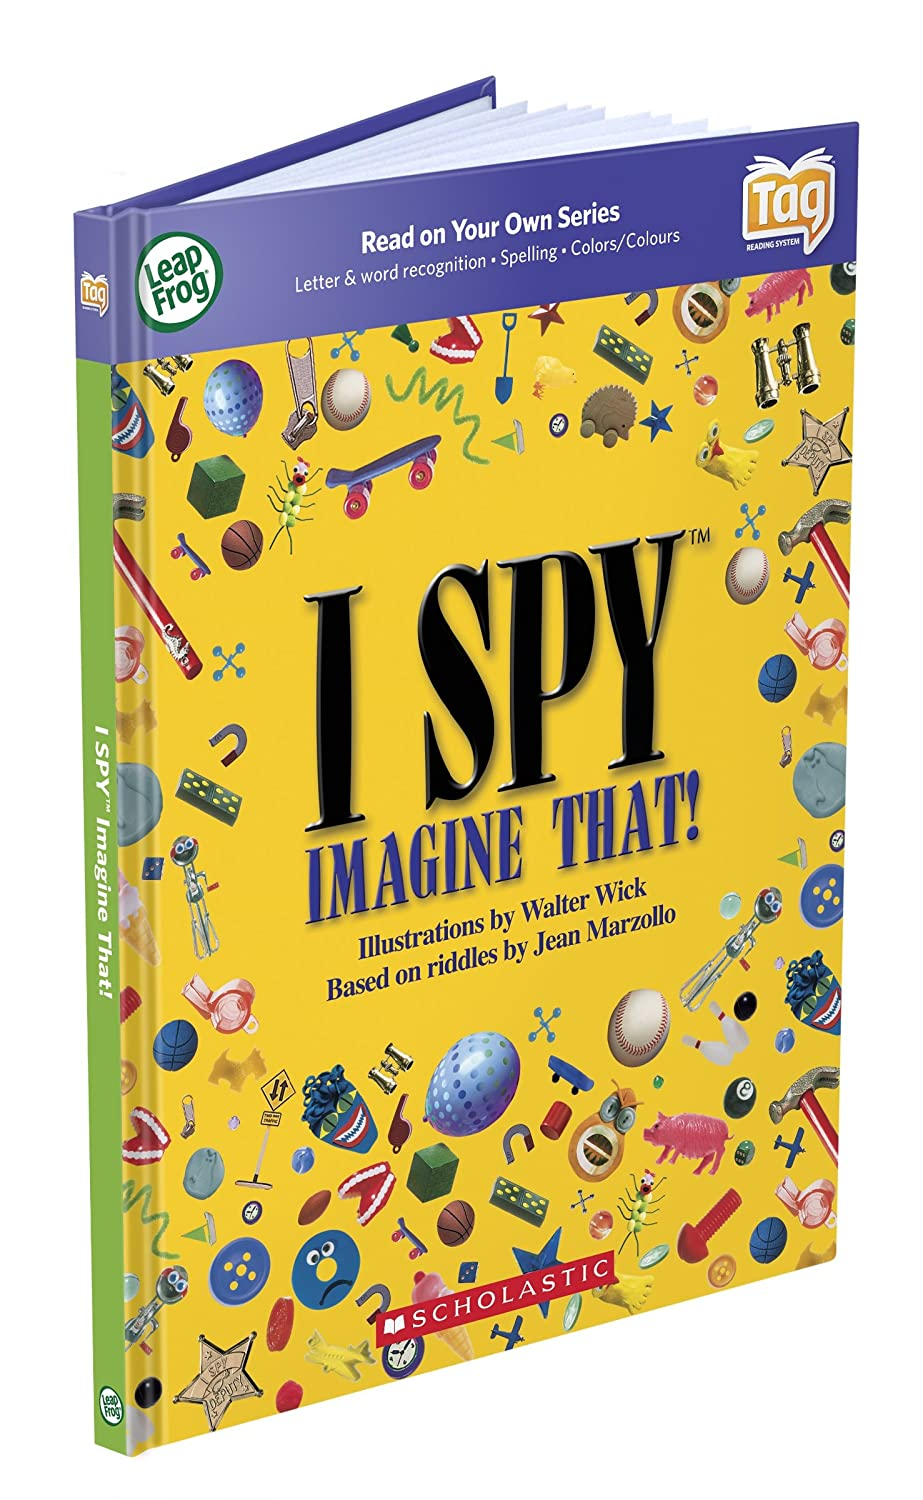 LeapFrog Tag Activity Storybook I SPY Imagine That!